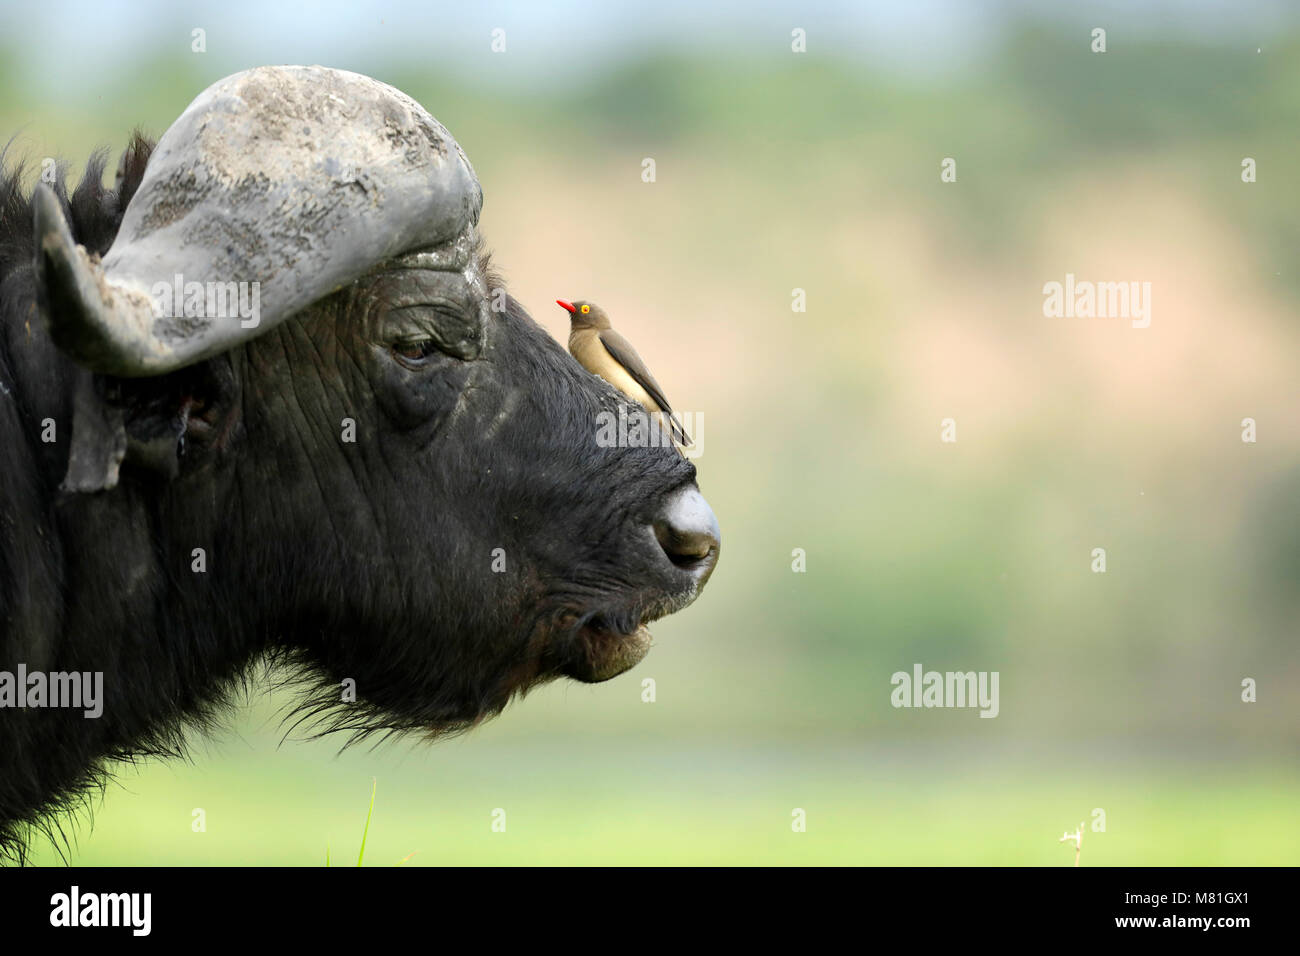 A buffalo rests in the Chobe National Park, Botswana. - Stock Image